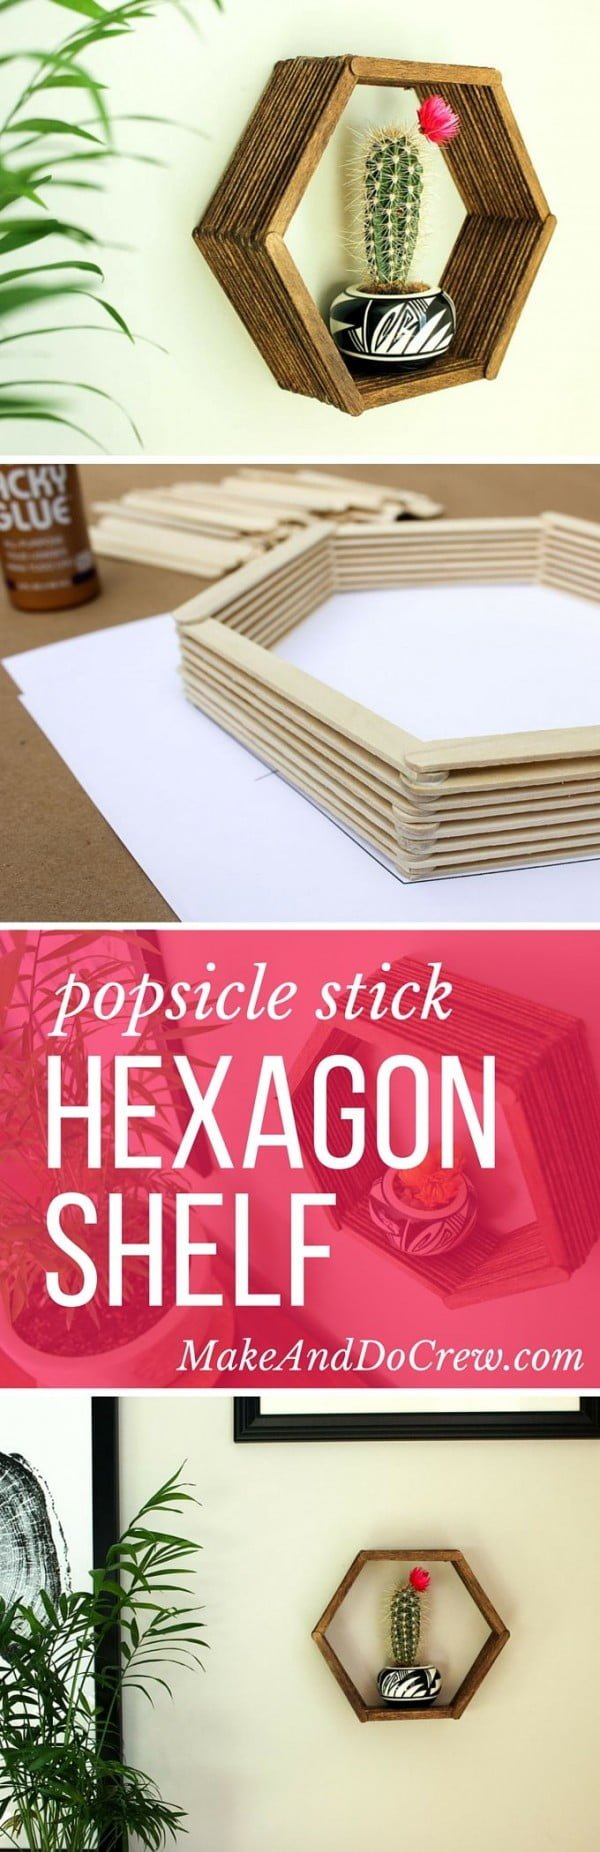 How to make #DIY wall shelves from popsicle sticks. Neat idea! #homedecorideas